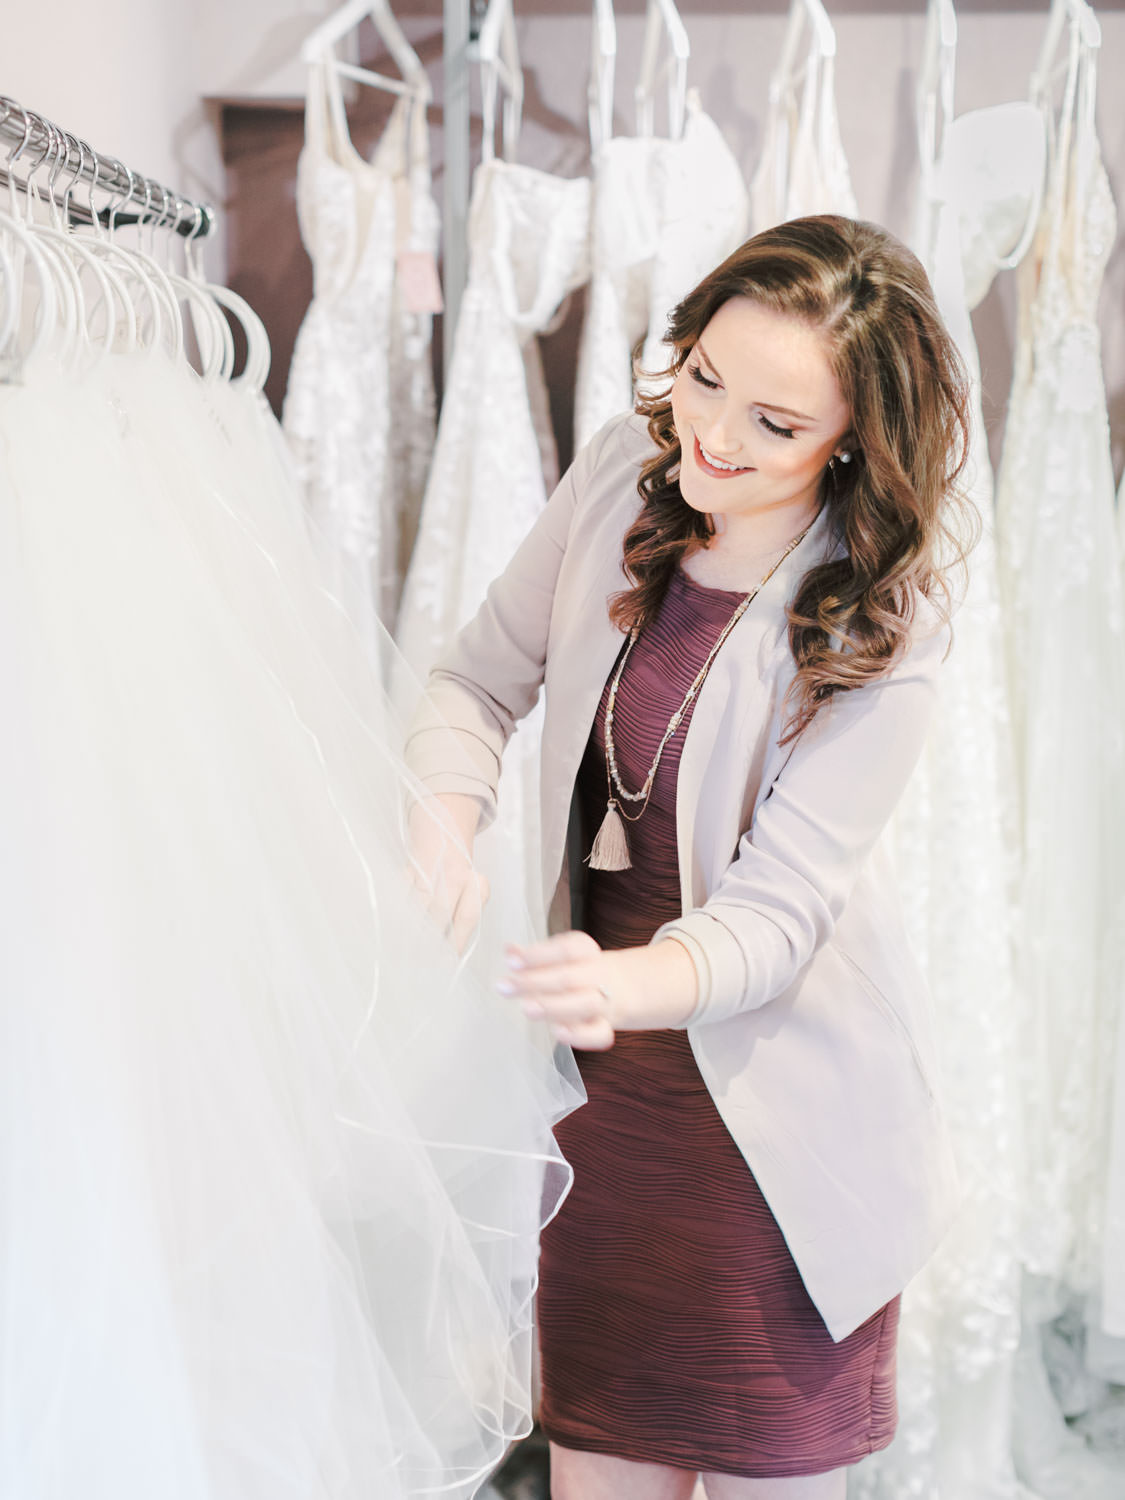 Behind the scenes of life as a San Diego bridal stylist at The White Flower Bridal Boutique. Cavin Elizabeth Photography